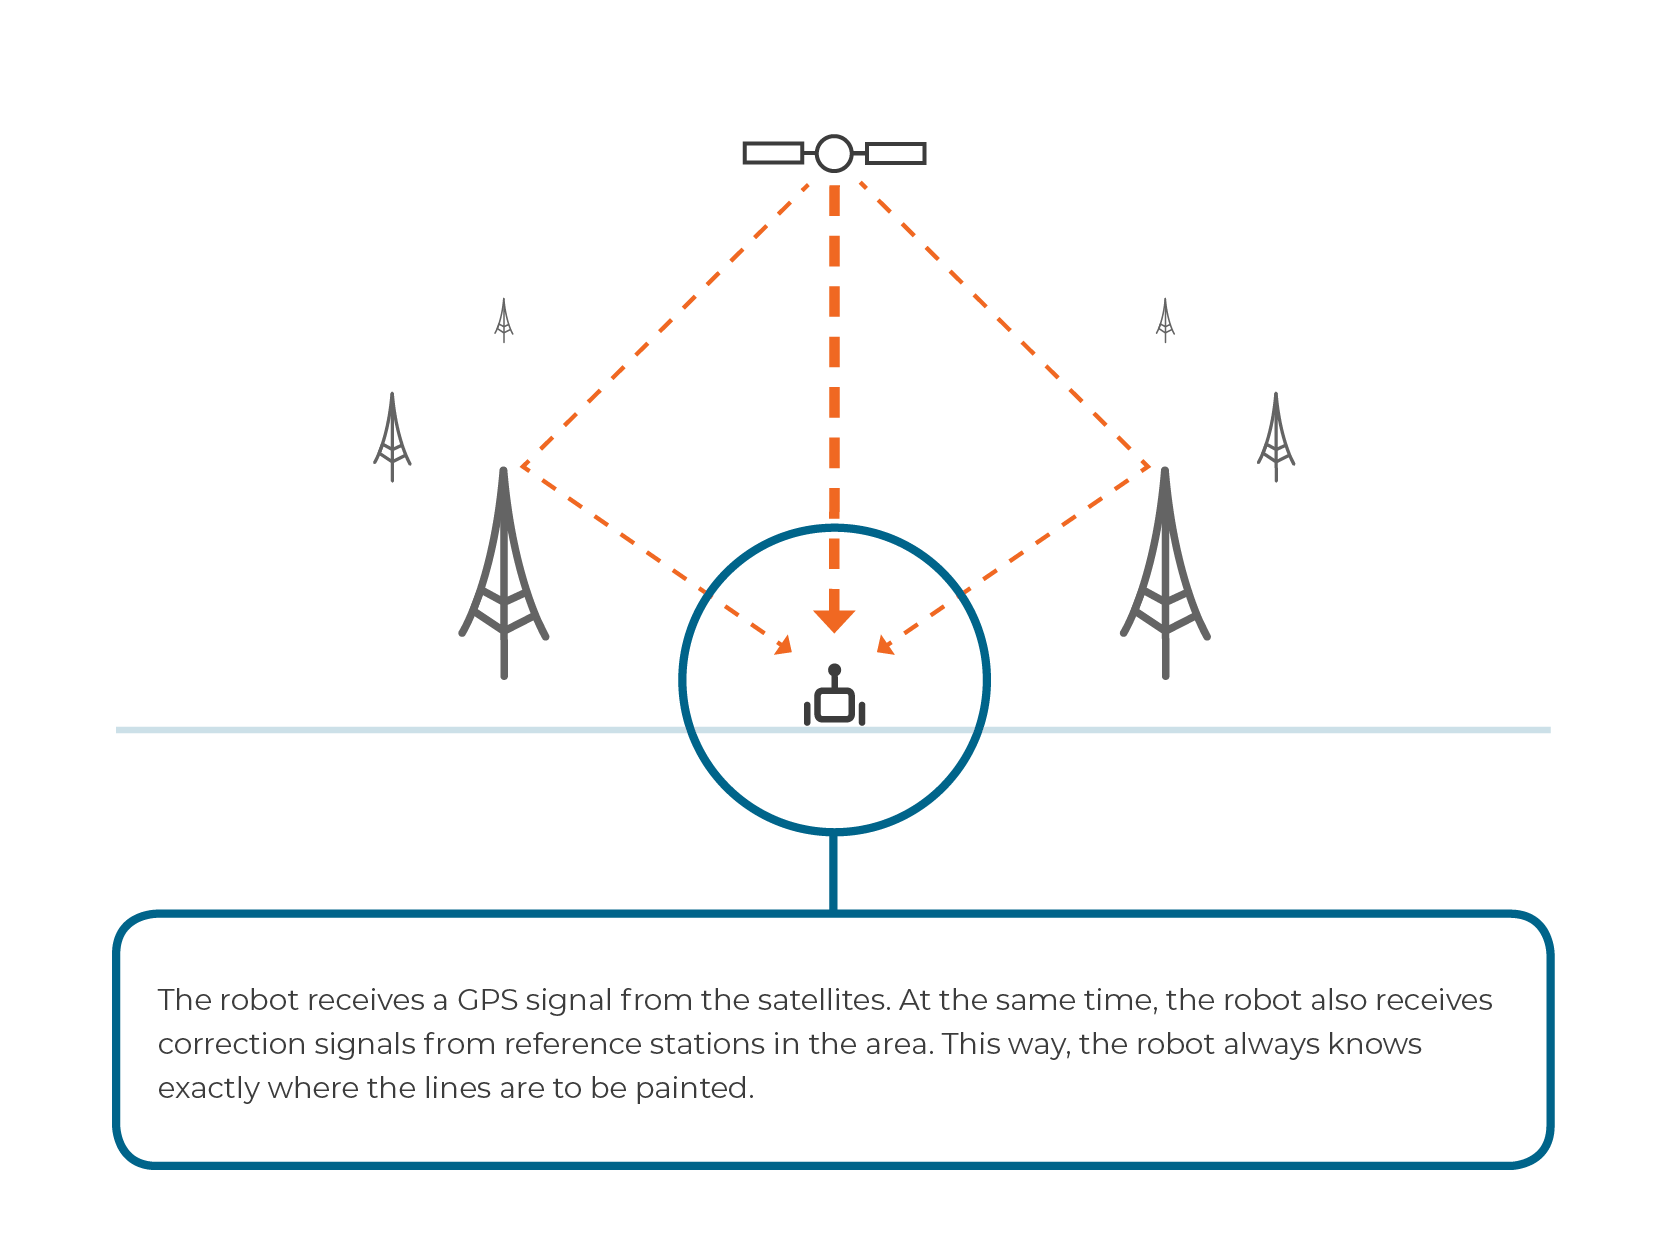 High-precision sports line marking using GPS signal and RTK network